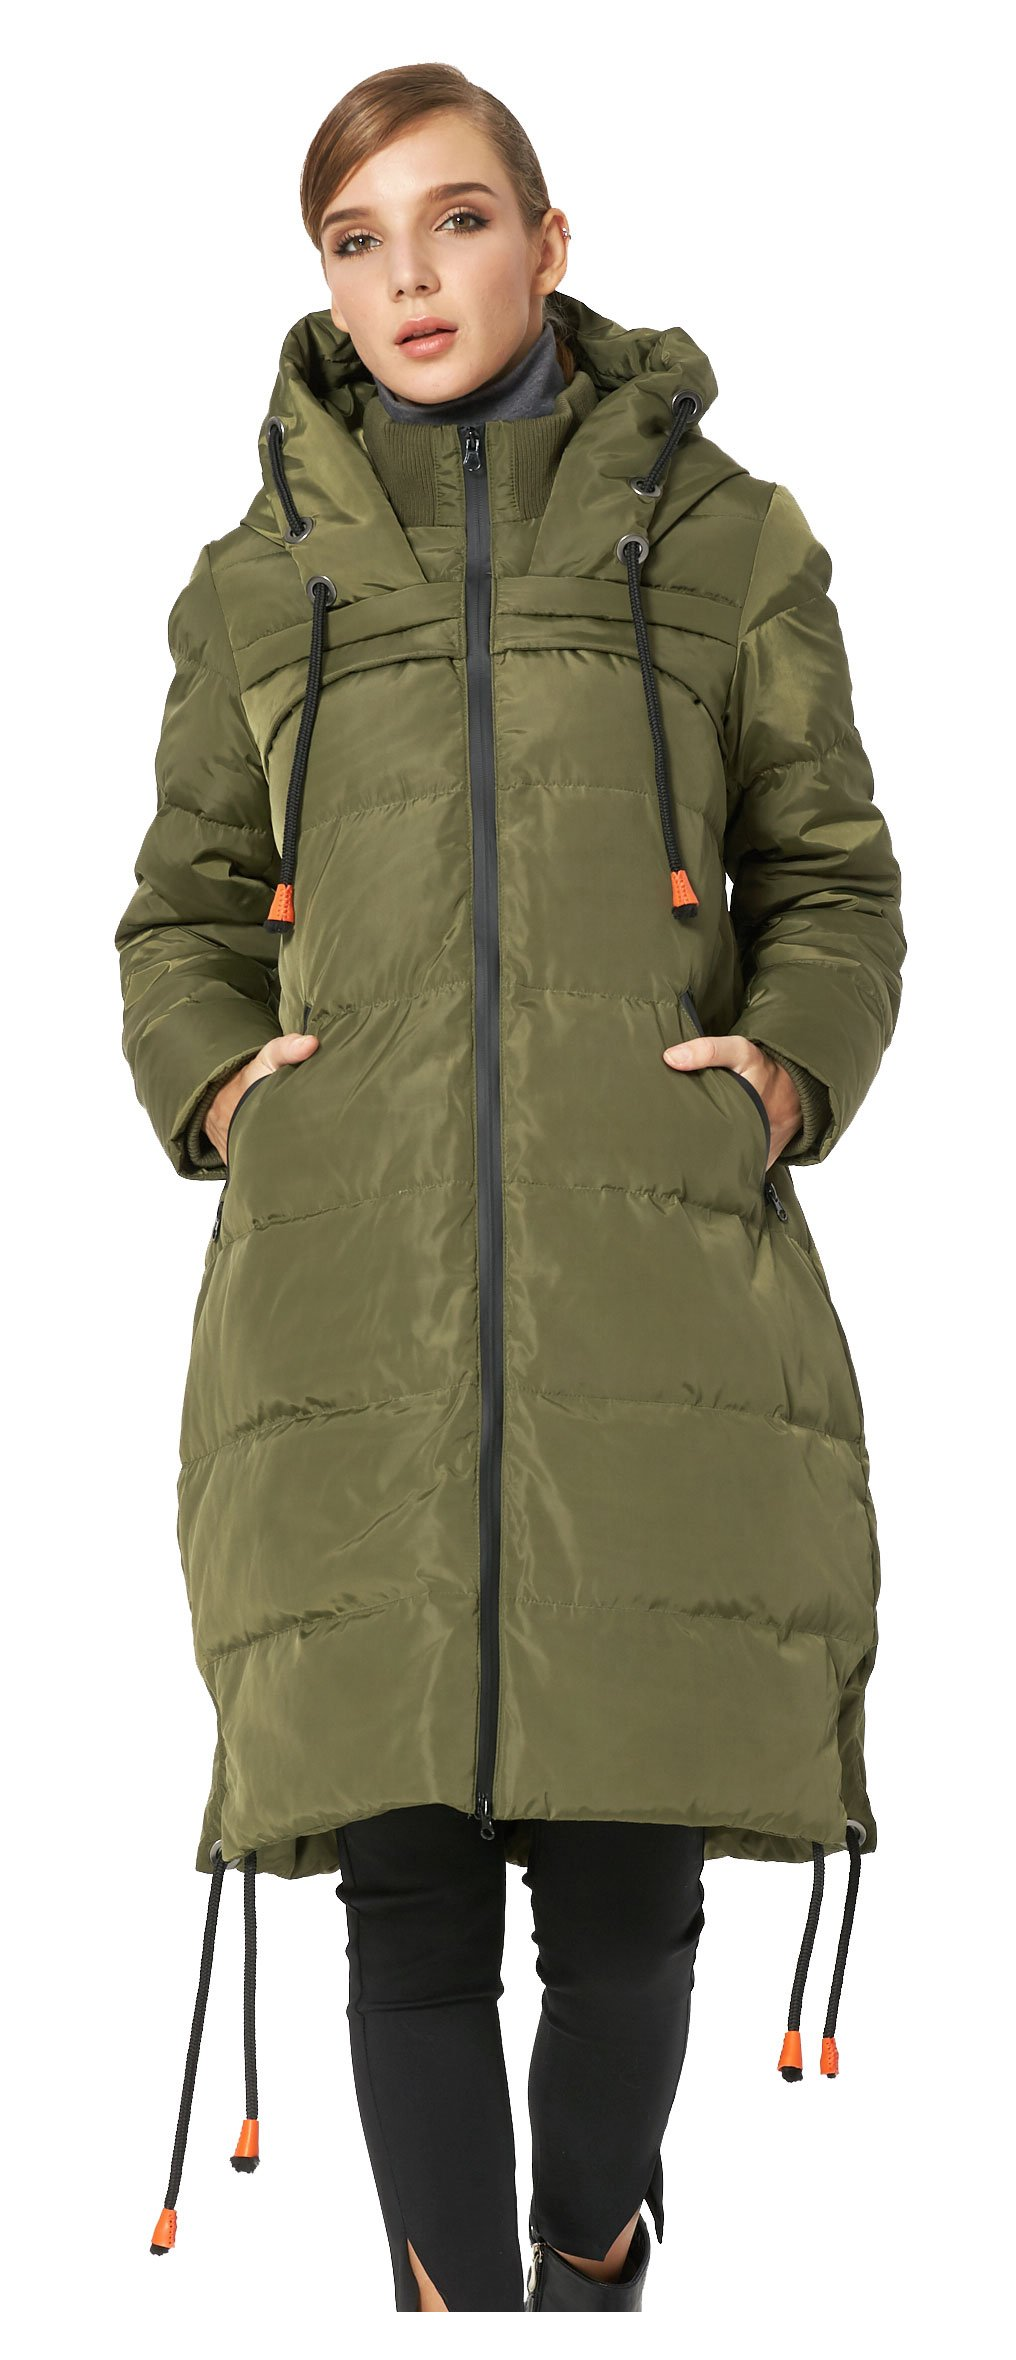 Orolay Women's Thickened Contrast Color Drawstring Down Jacket Hooded ArmyGreen S by Orolay (Image #1)